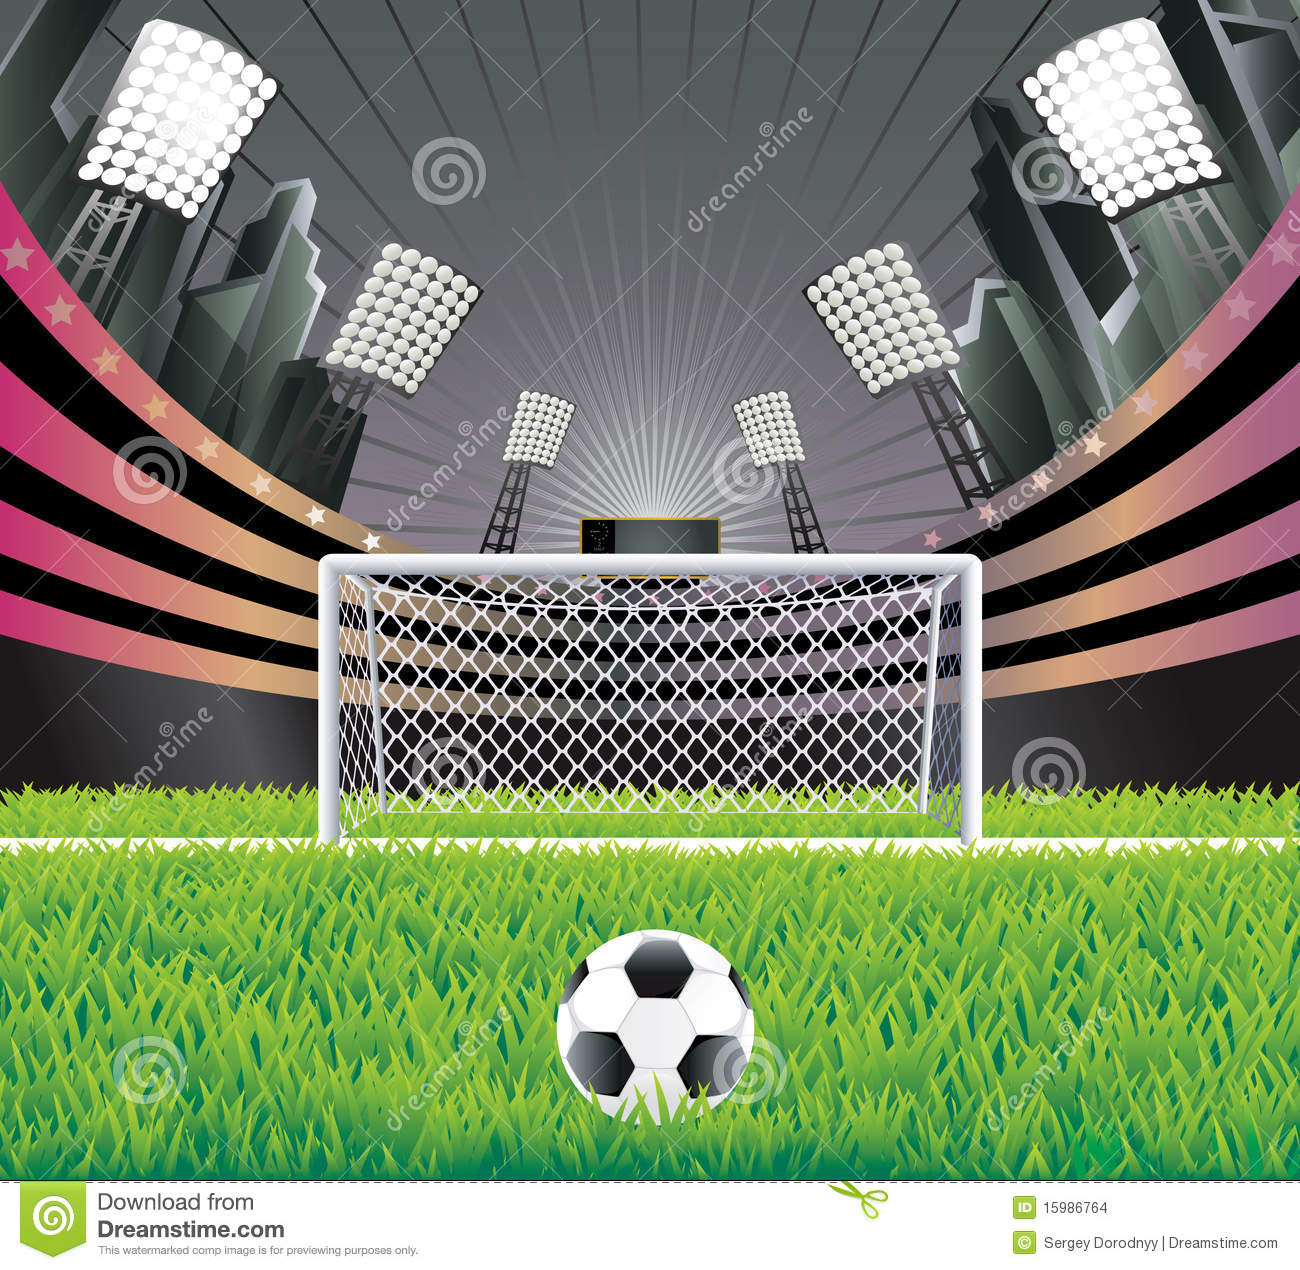 cartoon football stadium stock illustrations 4 876 cartoon football stadium stock illustrations vectors clipart dreamstime dreamstime com